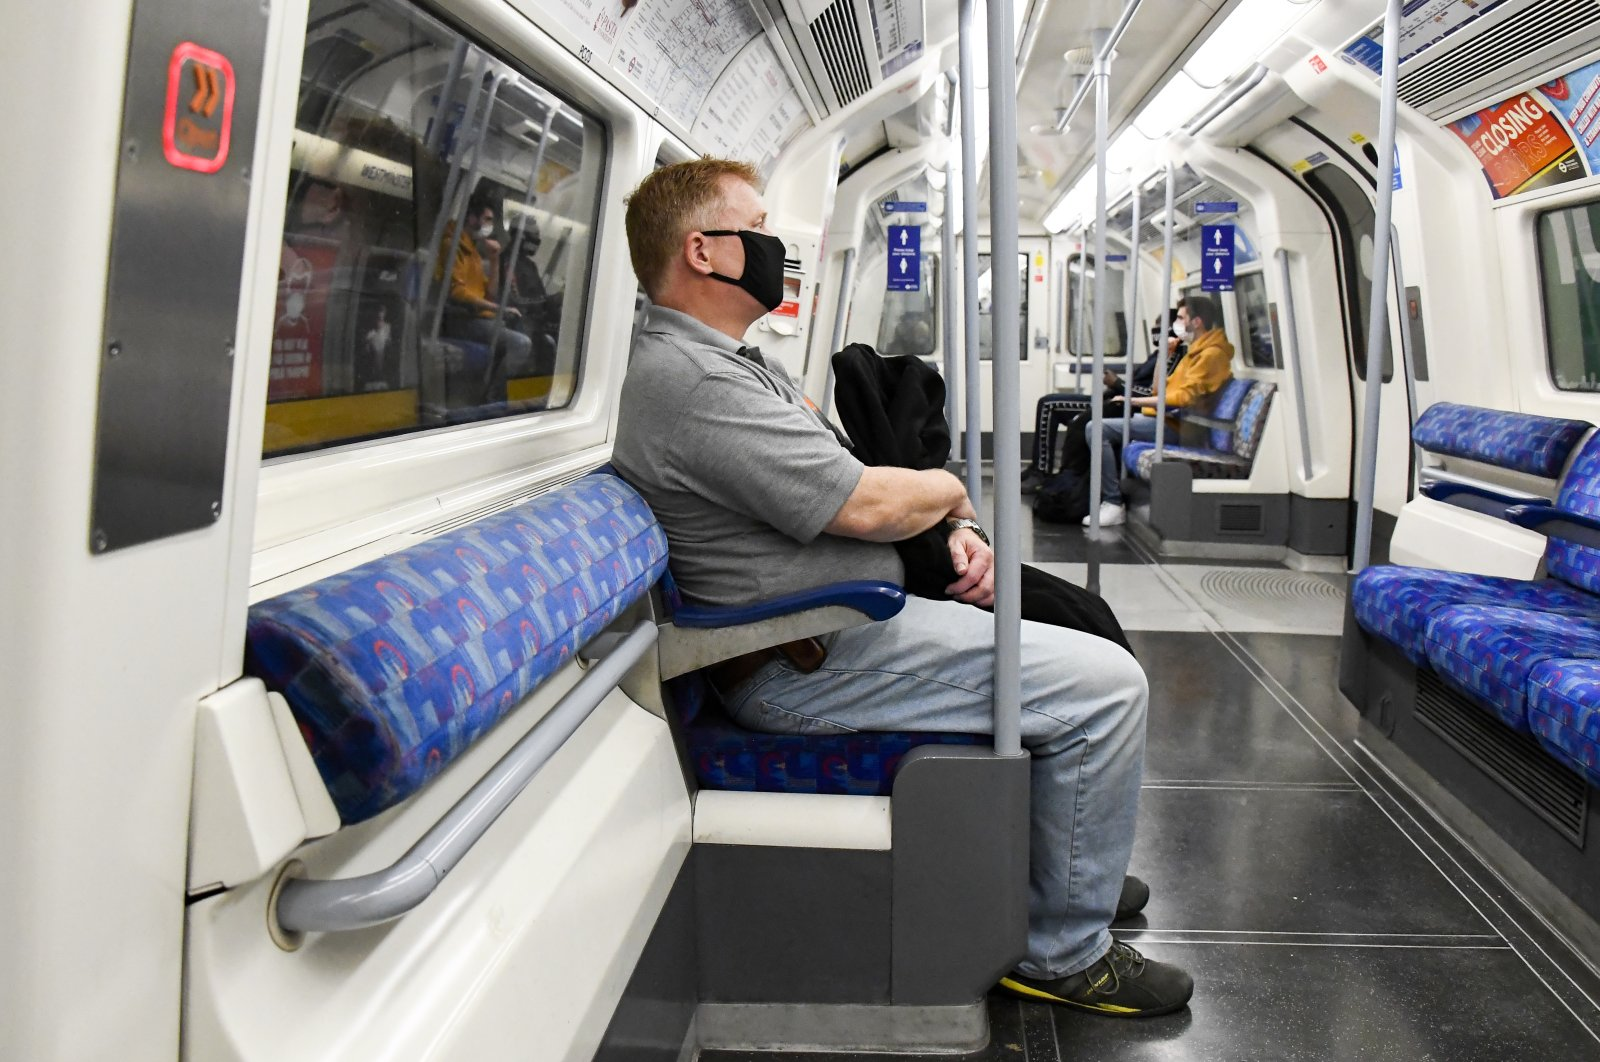 A man wears a face mask as he sits in an underground train, London, Sept. 8, 2020. (AP Photo)